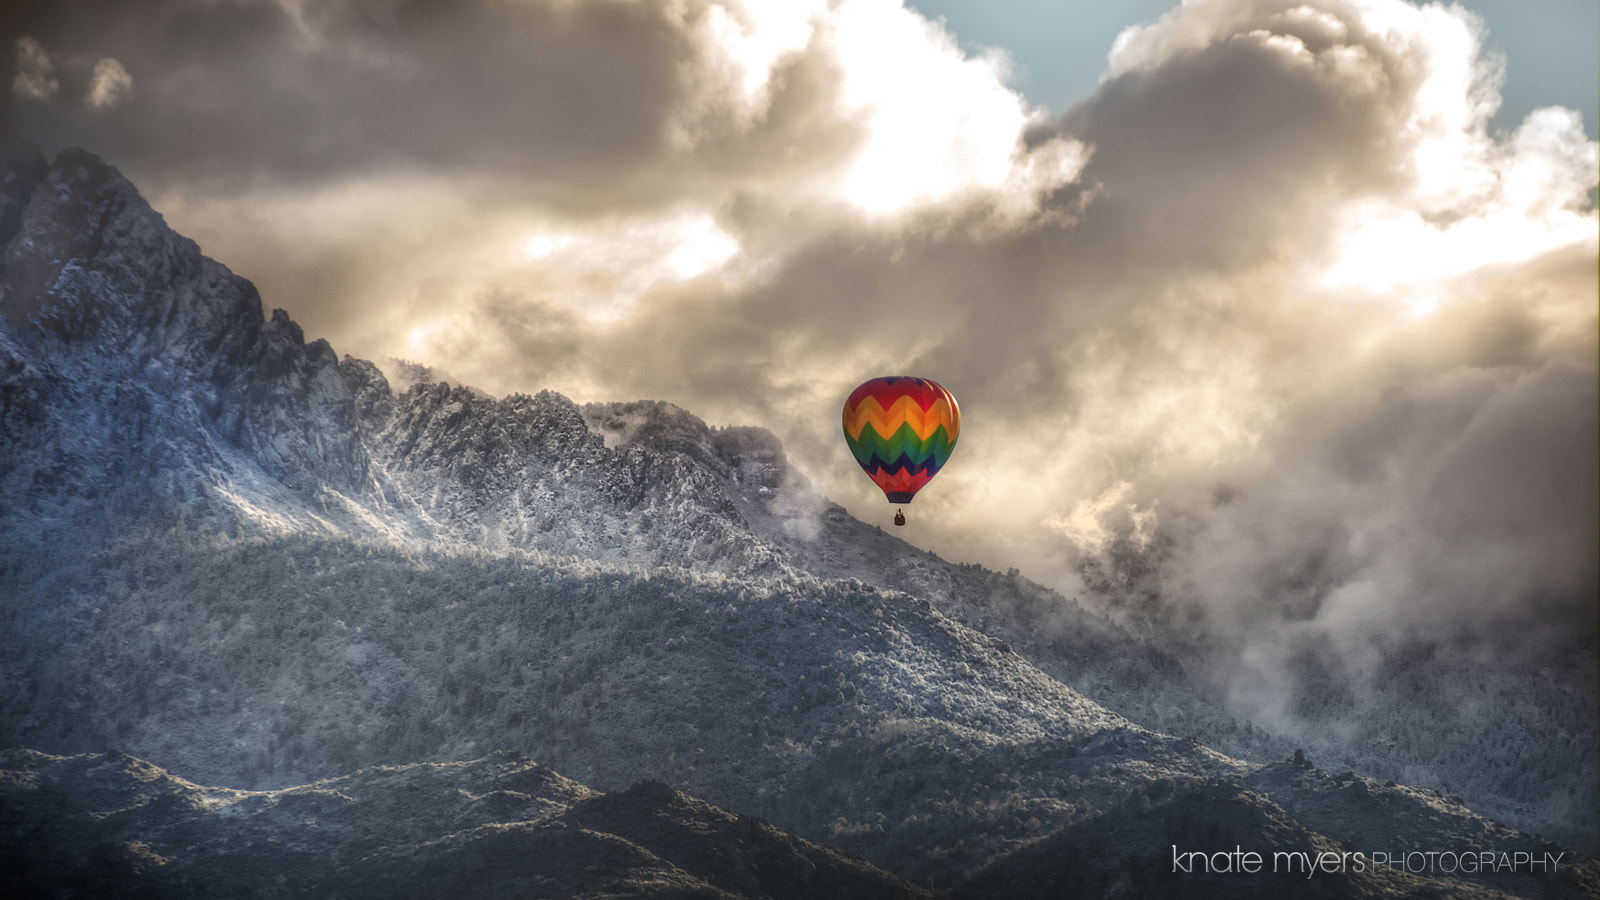 Photograph Balloon Frost by Knate Myers on 500px